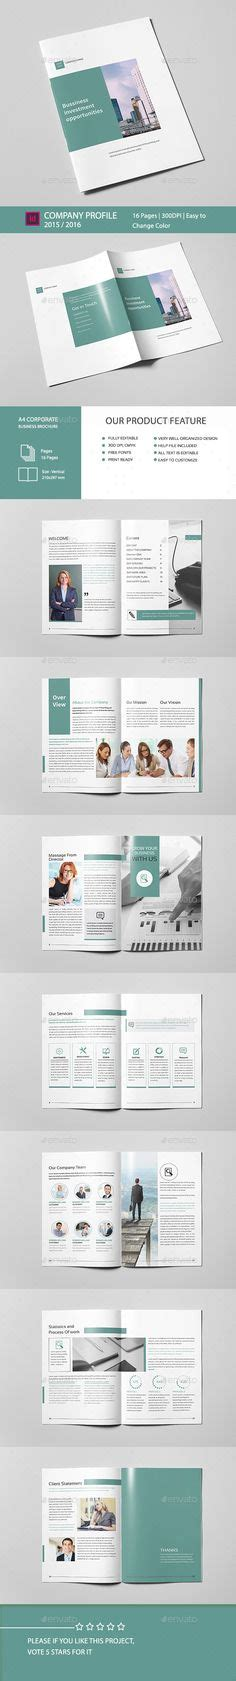 company profile template indesign college brochure template 16 pages design